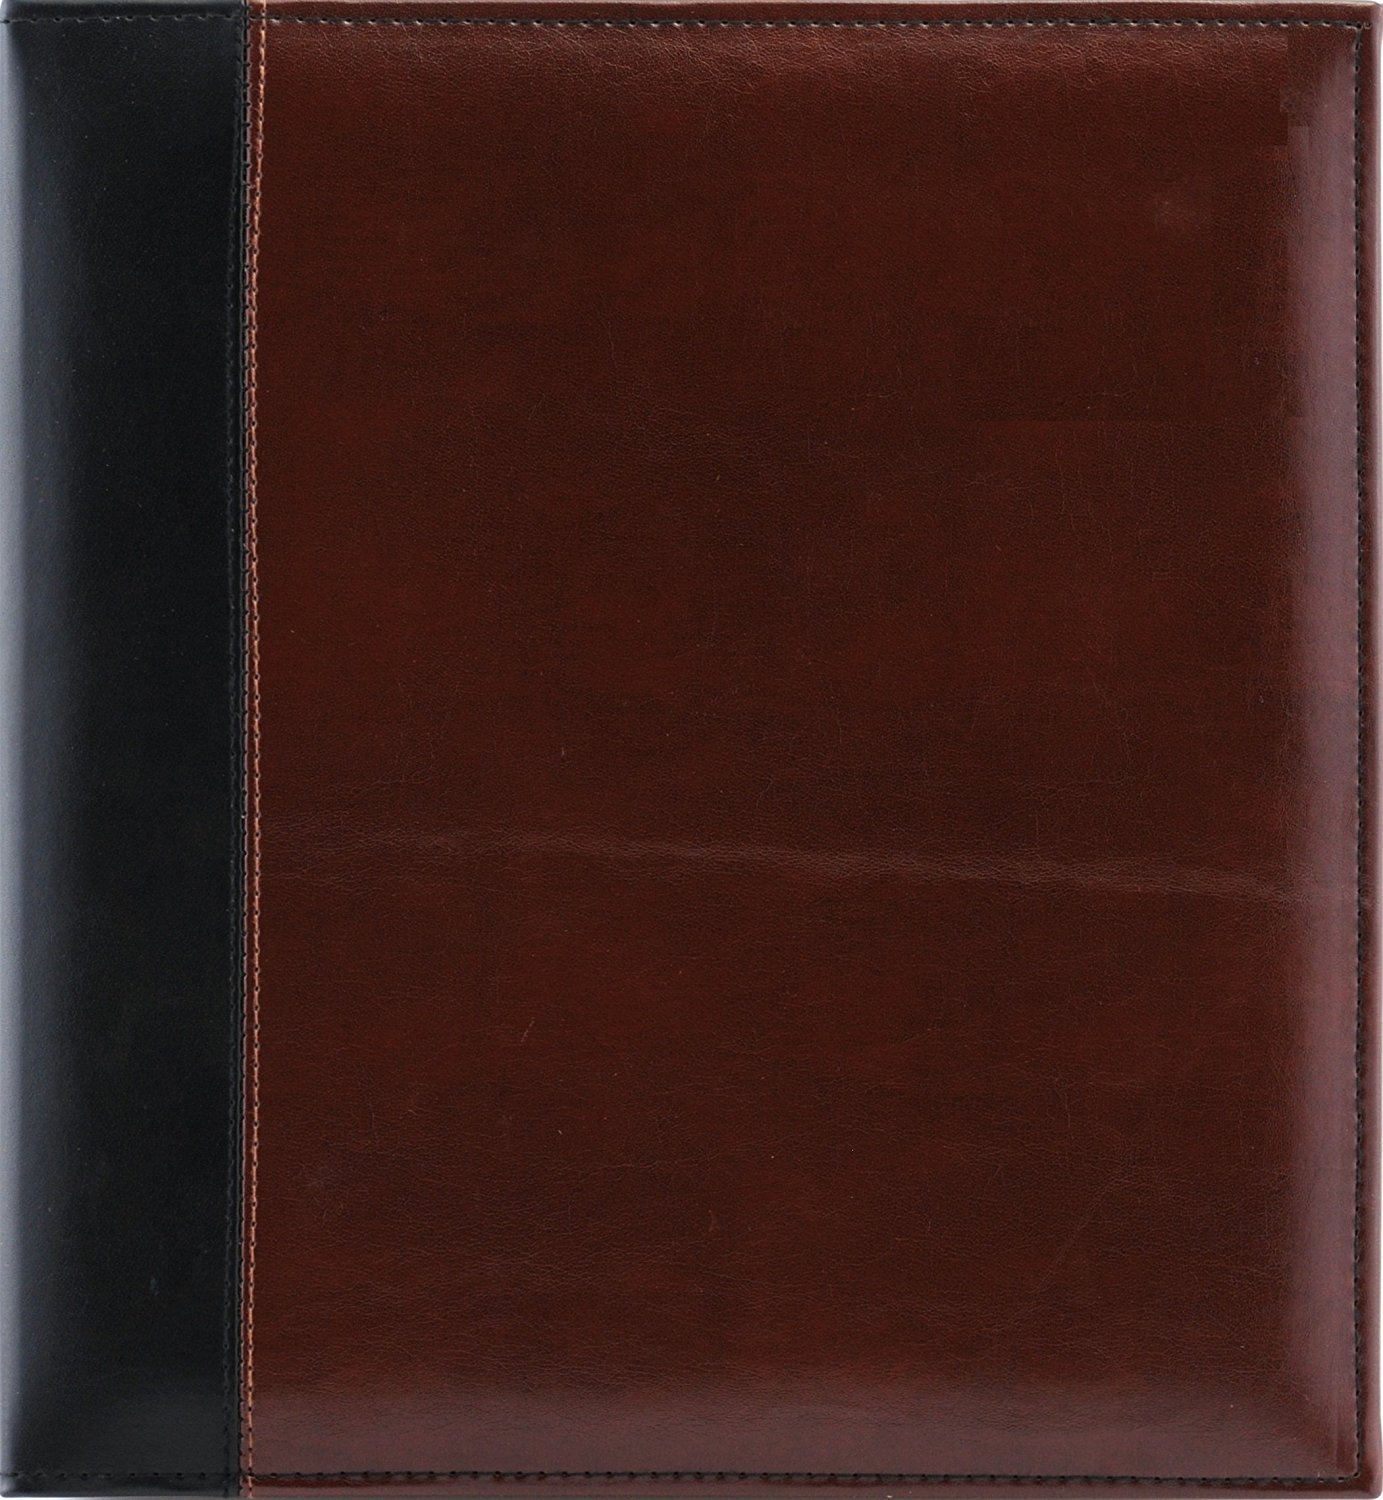 Pinnacle Magnetic Paged Faux Leather Ring Bound Photo Album 8x10